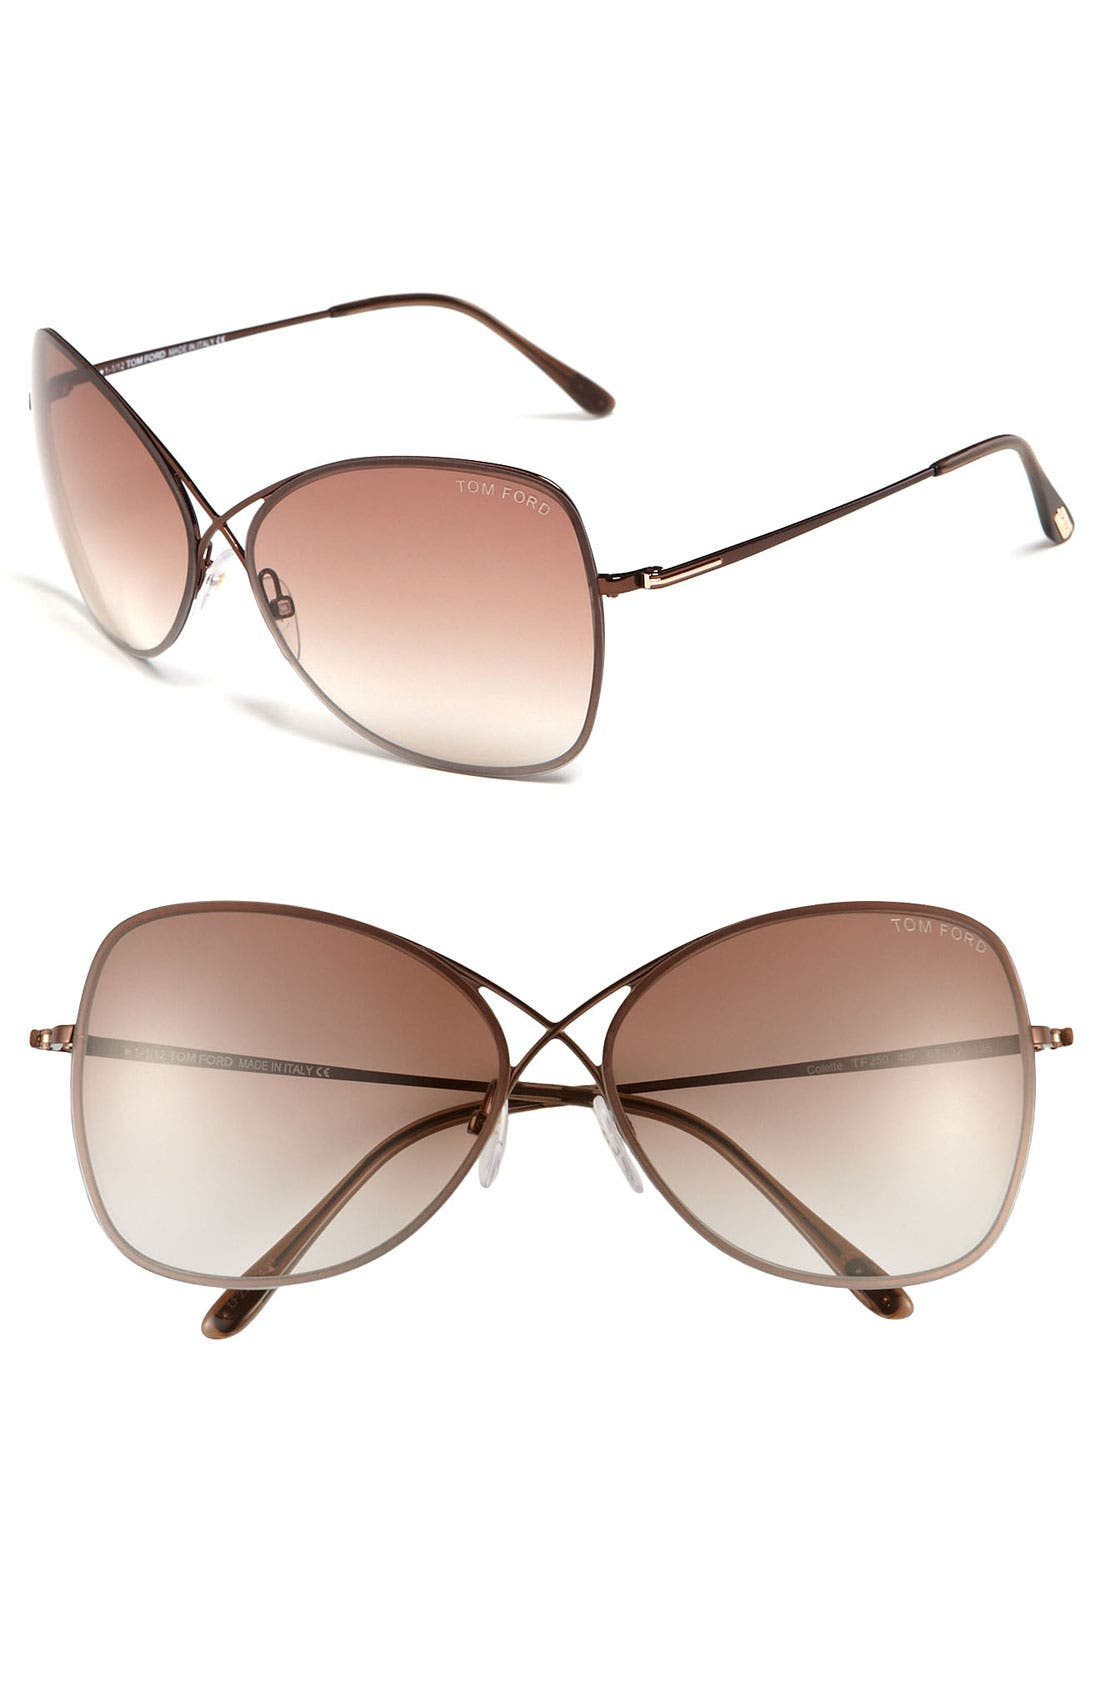 'Colette' 63mm Oversized Sunglasses,                         Main,                         color, Shiny Brown/ Brown Gradient